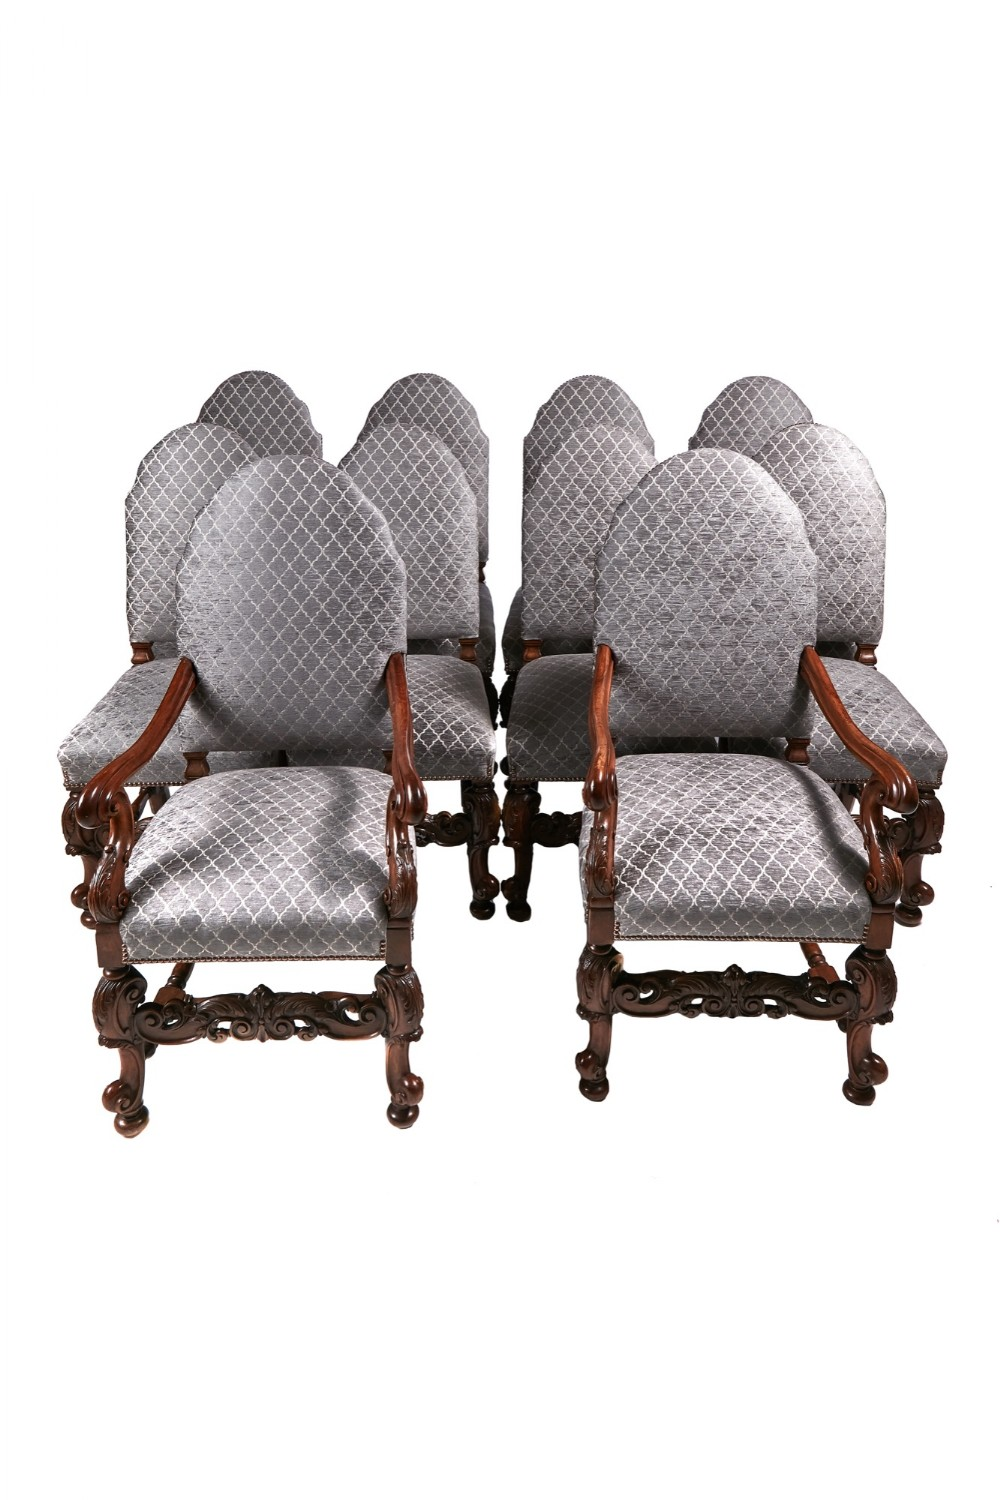 fine set 10 carved walnut dining chairs 8 pair elbows circa 1920s